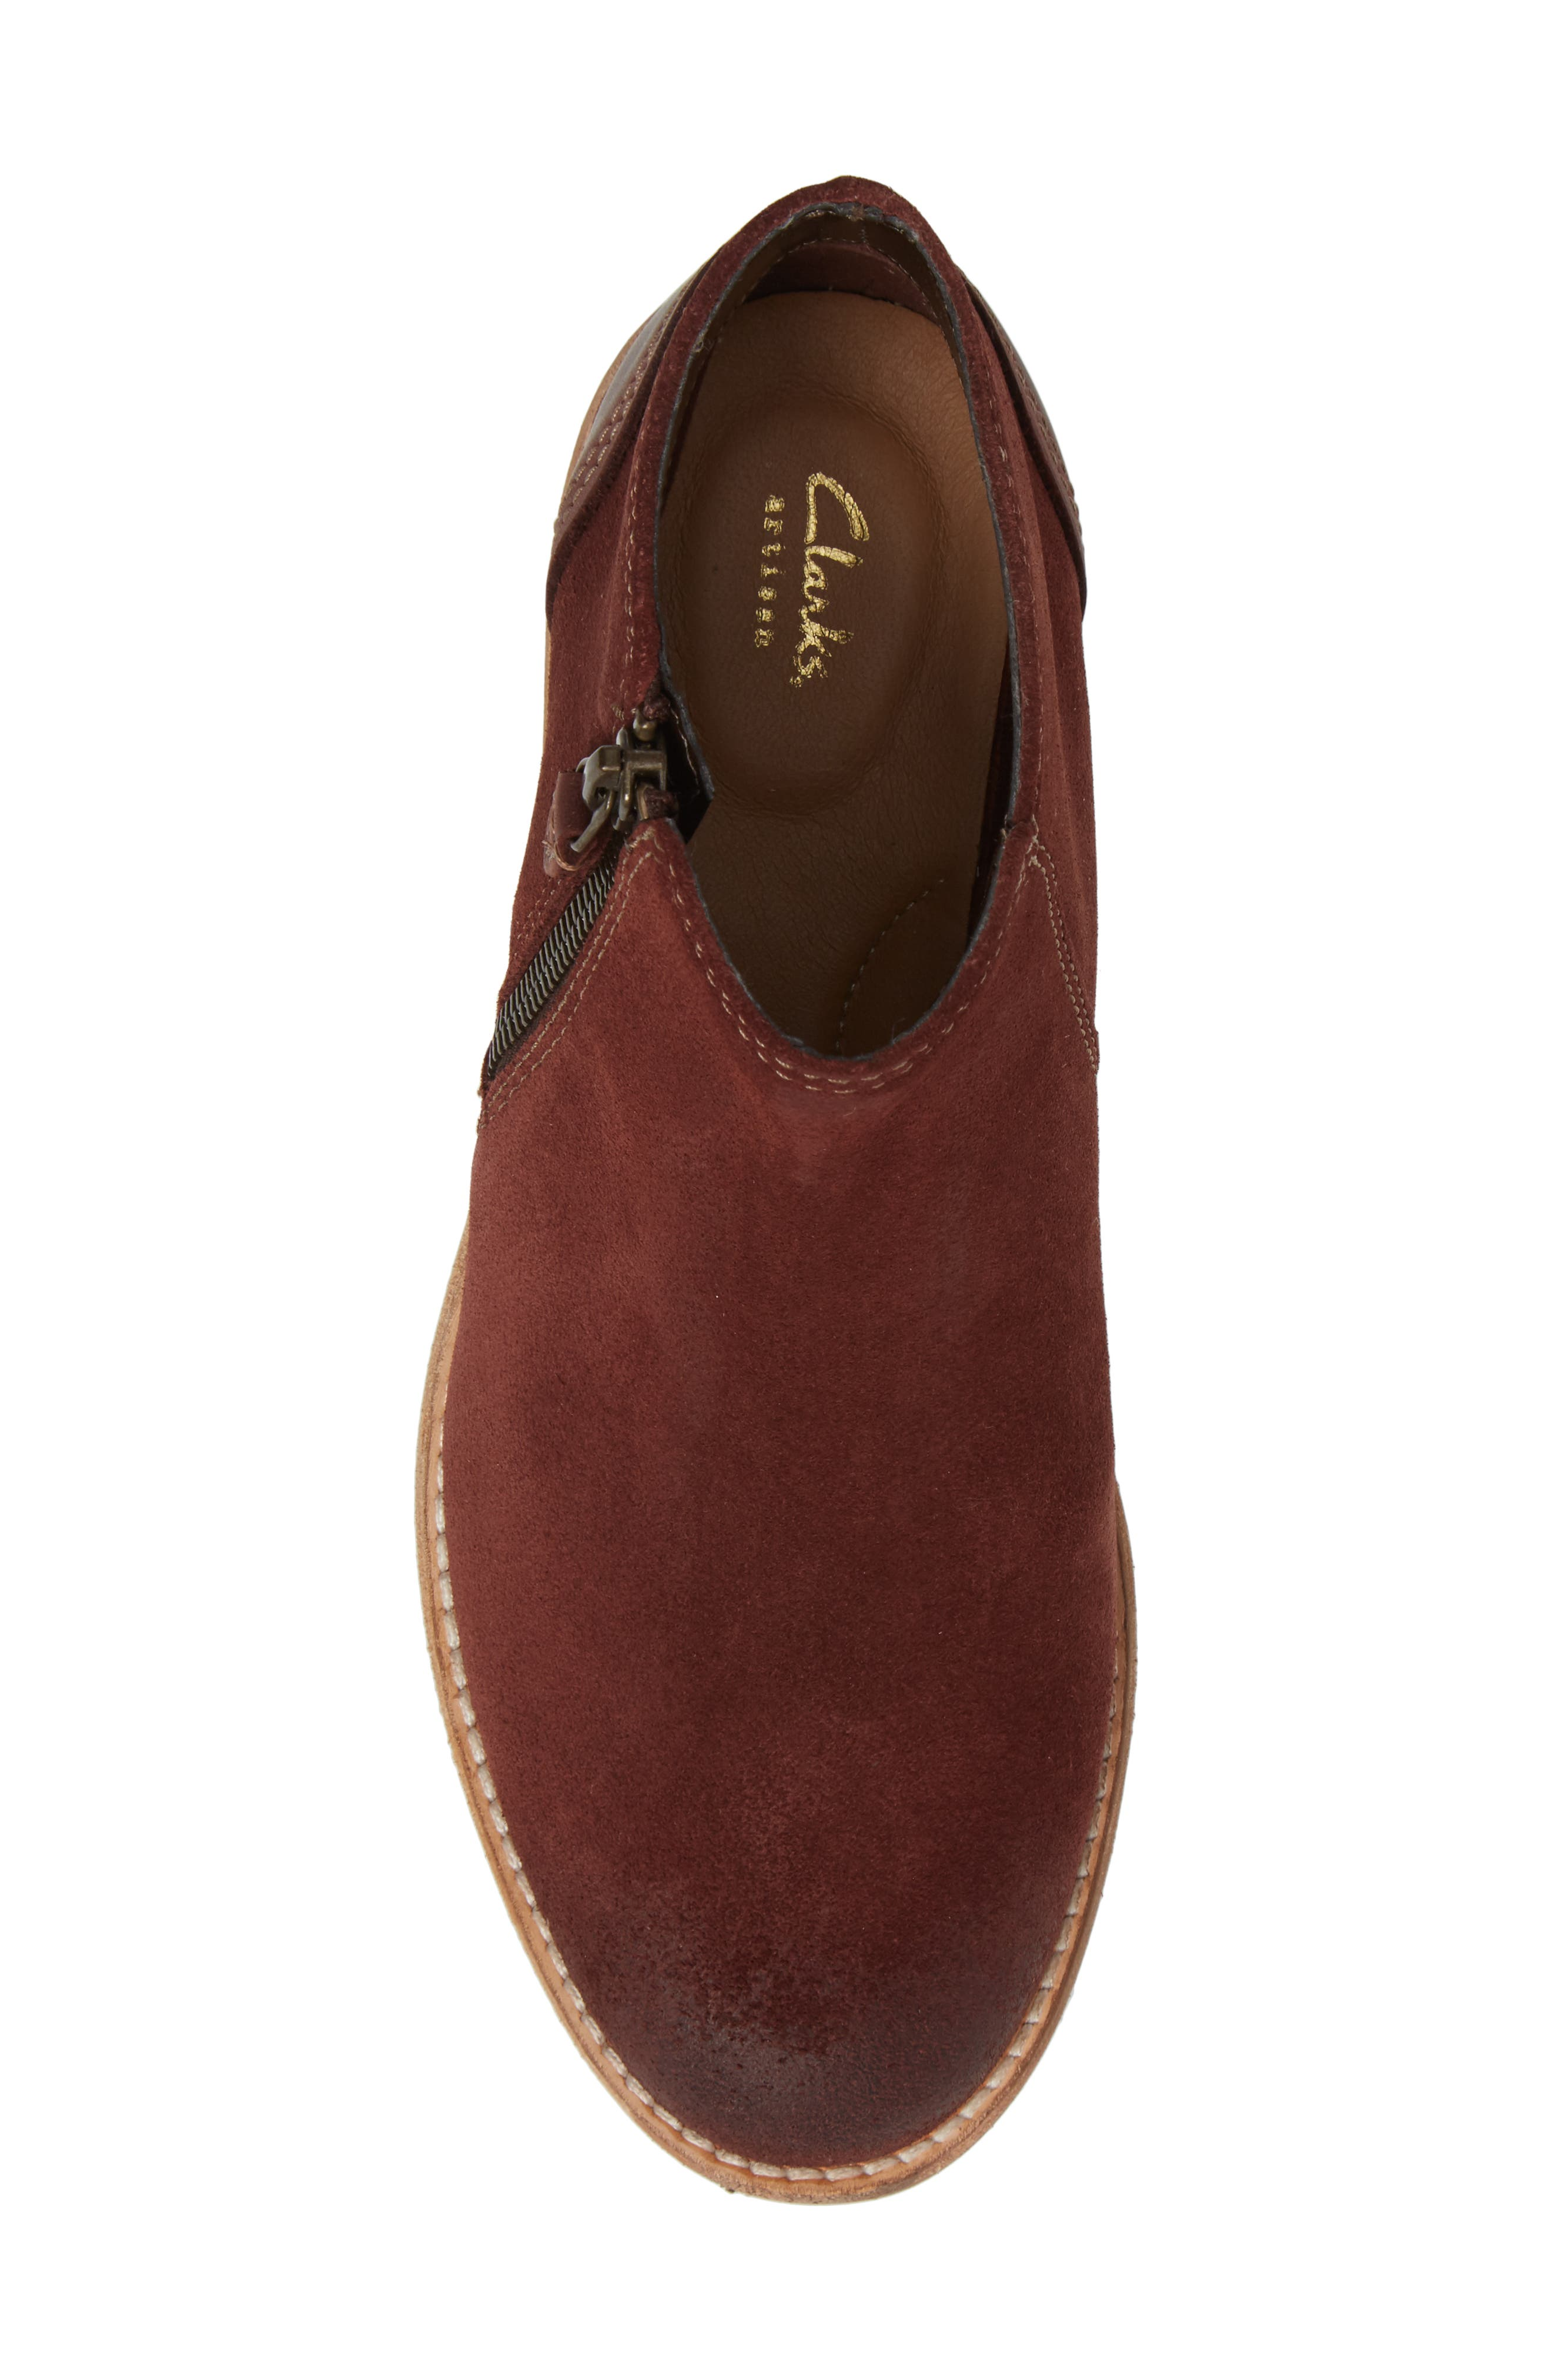 CLARKS<SUP>®</SUP>, Maypearl Juno Ankle Boot, Alternate thumbnail 5, color, MAHOGANY SUEDE